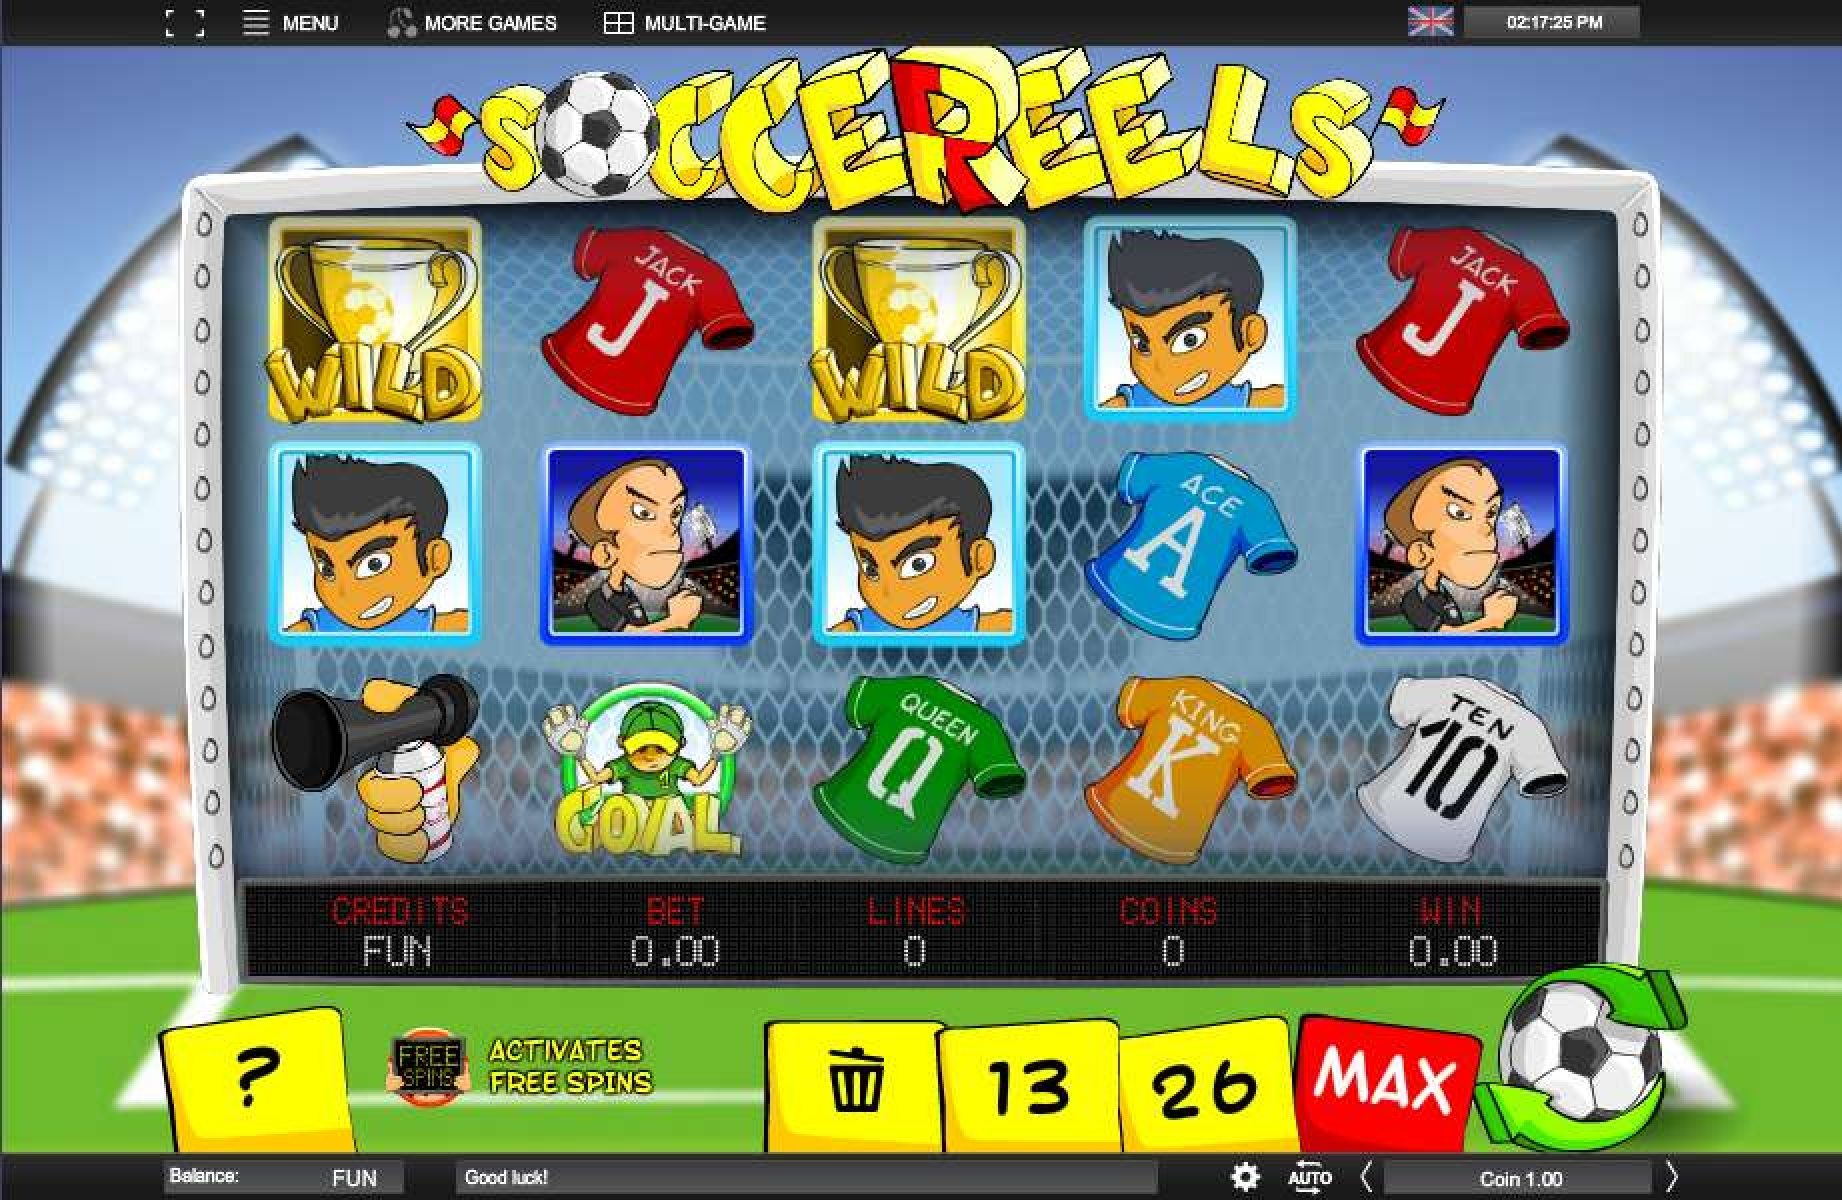 Reels in Soccereels Slot Game by Espresso Games